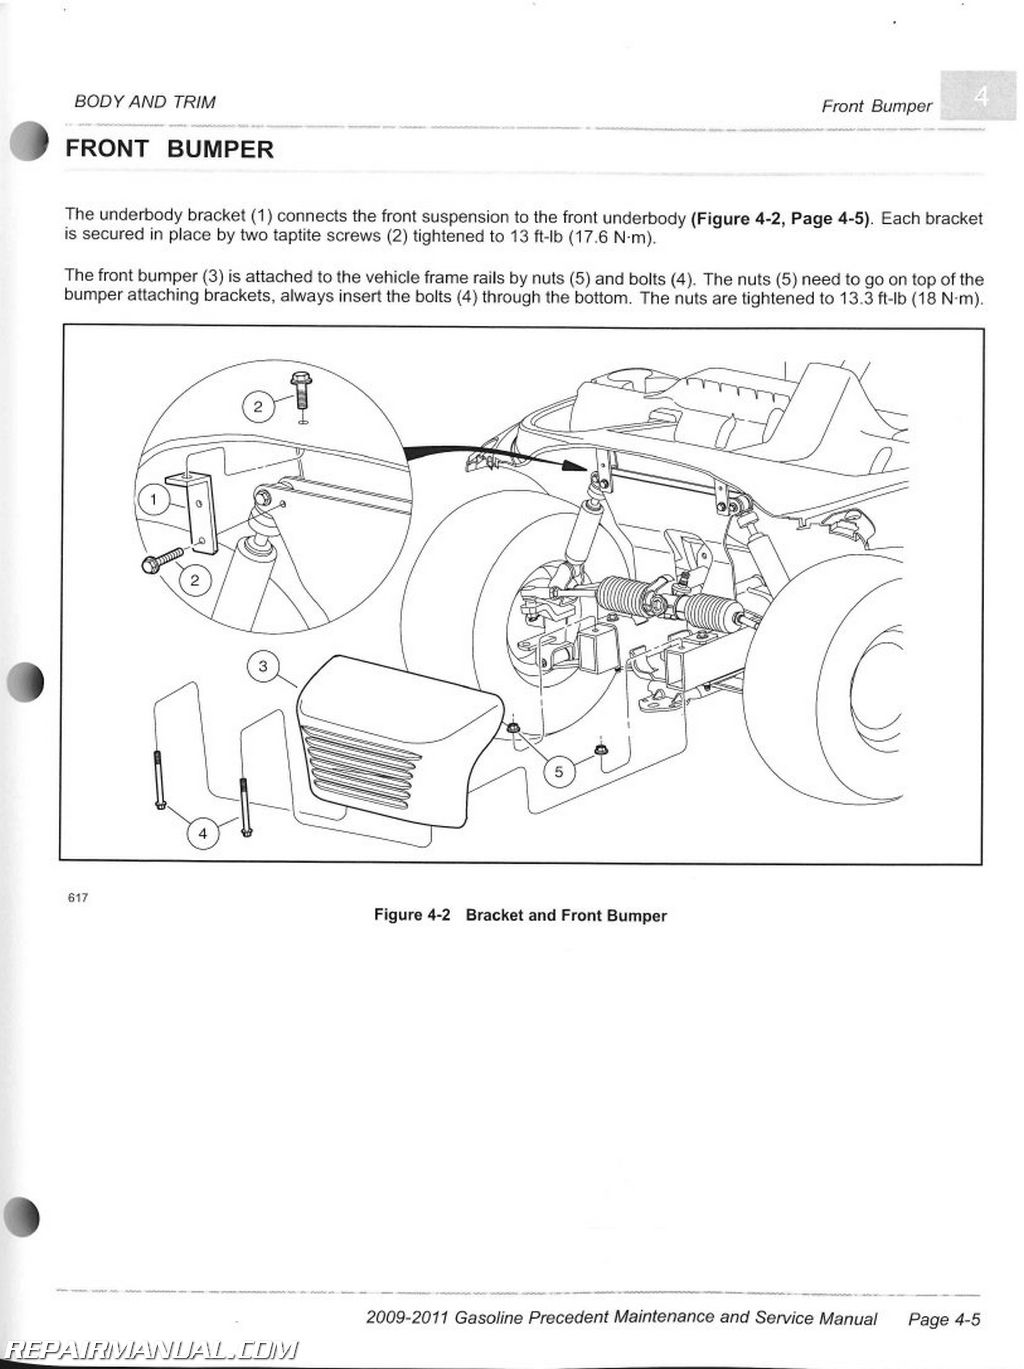 2009 Club Car Precedent Battery Wiring Diagram Solutions Gas 2018 Gasoline Maintenance And Service Manual